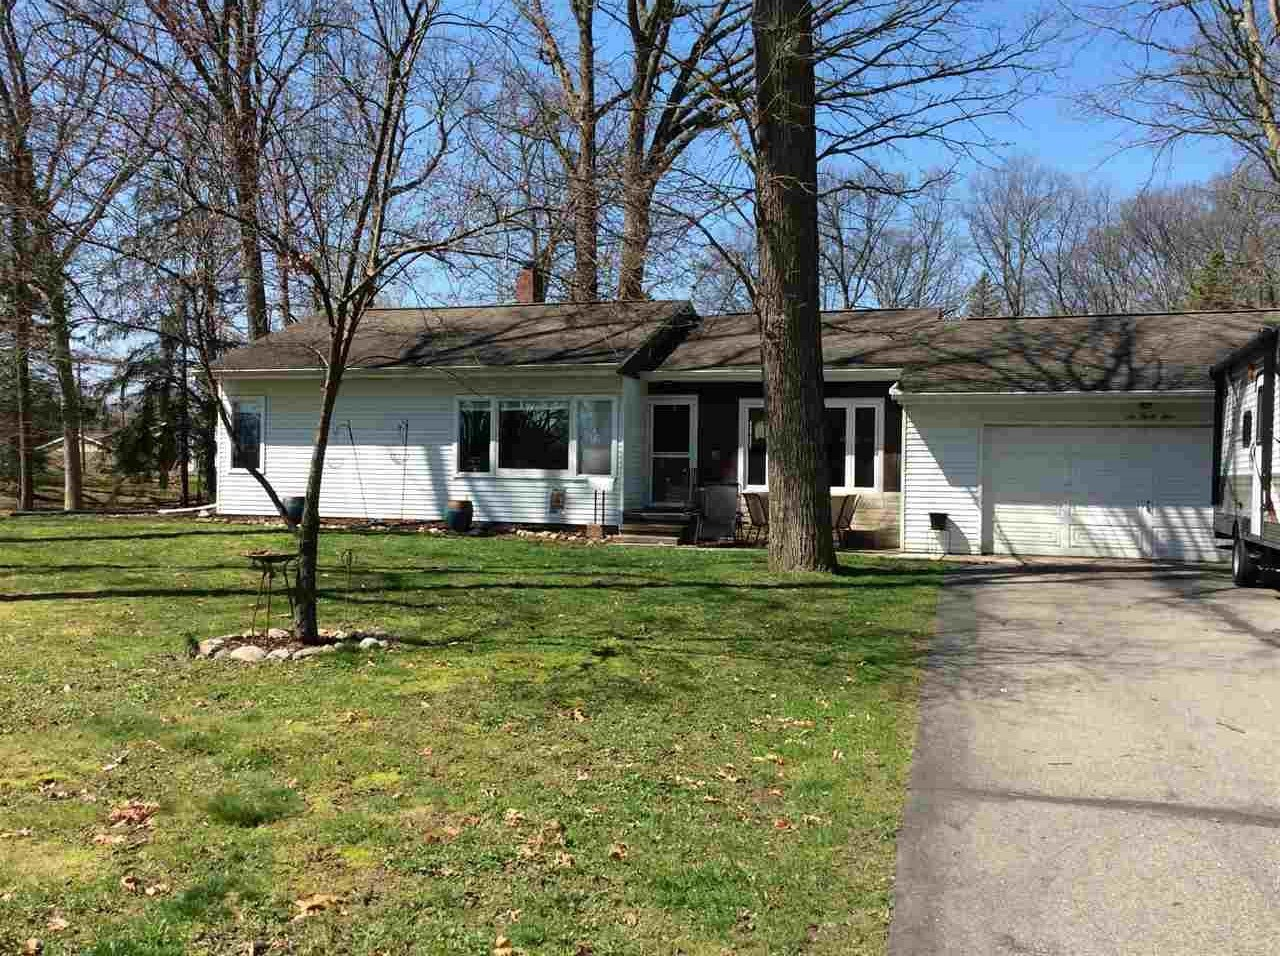 634 S Superior St, Angola, IN 46703